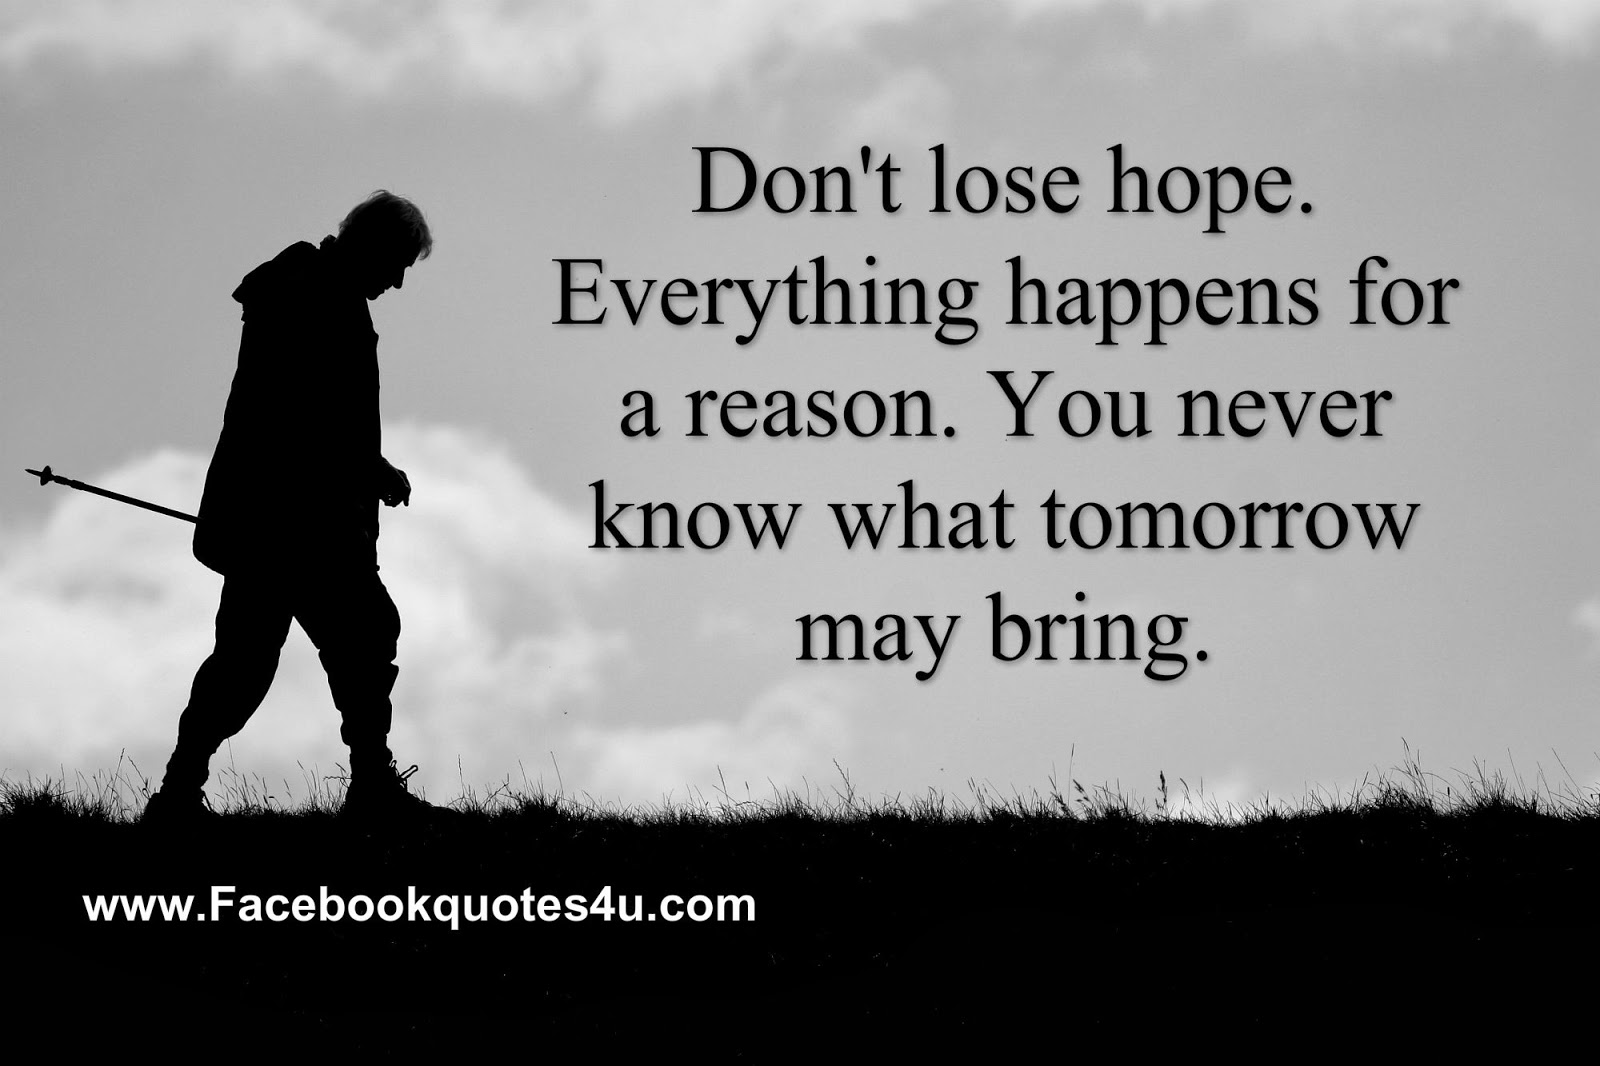 Have Faith In Tomorrow For It Can Bring Better Days: Dont Lose Hope Quotes. QuotesGram